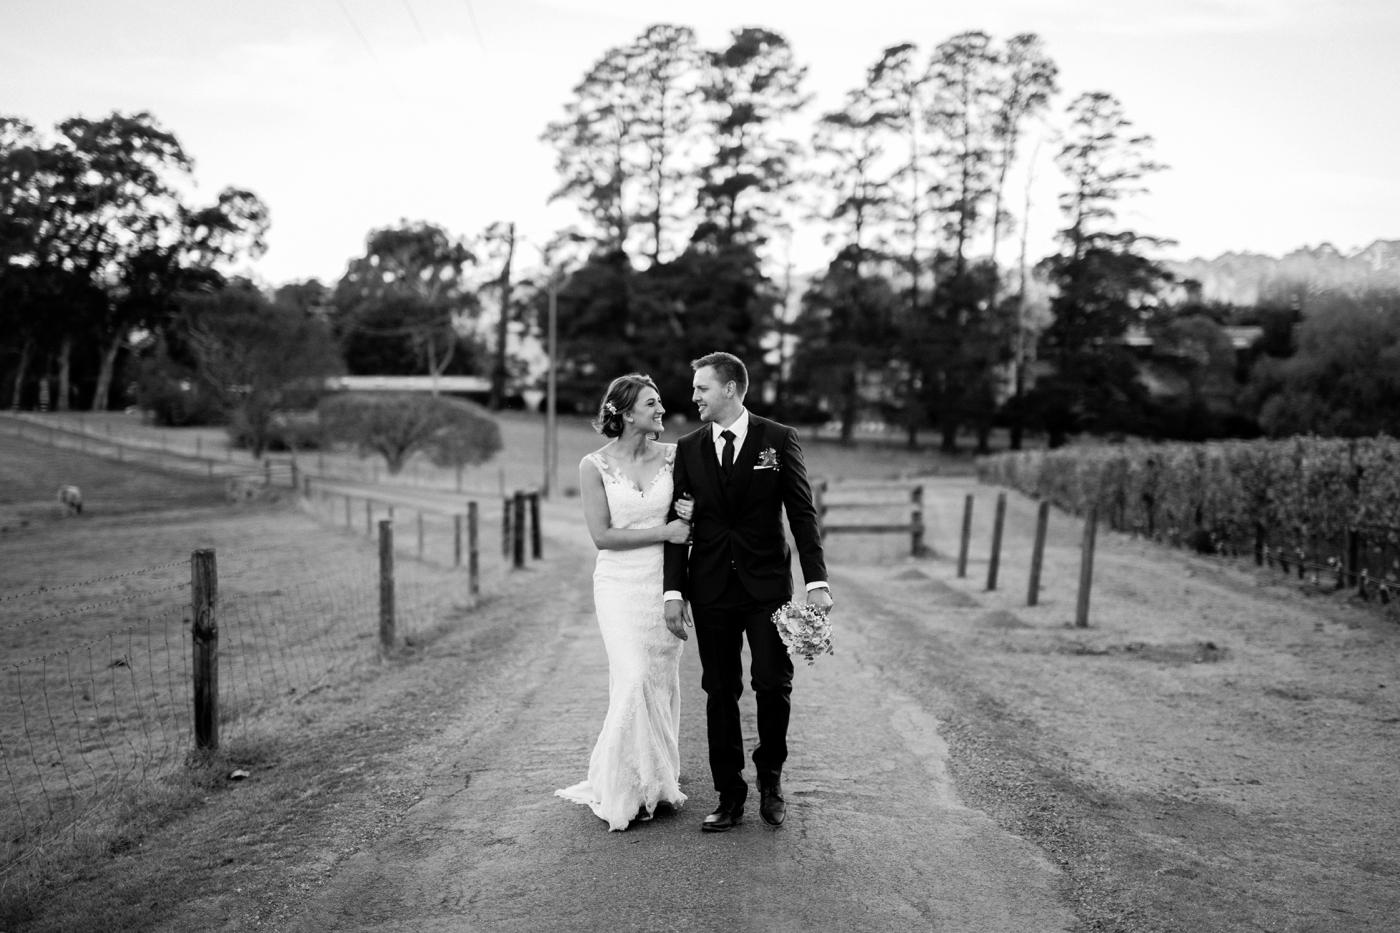 Bec & Mitch - Natural Wedding Photography in Adelaide - Beautiful, candid wedding photographer in Adelaide - Katherine Schultz - www.katherineschultzphotography.com_0039.jpg